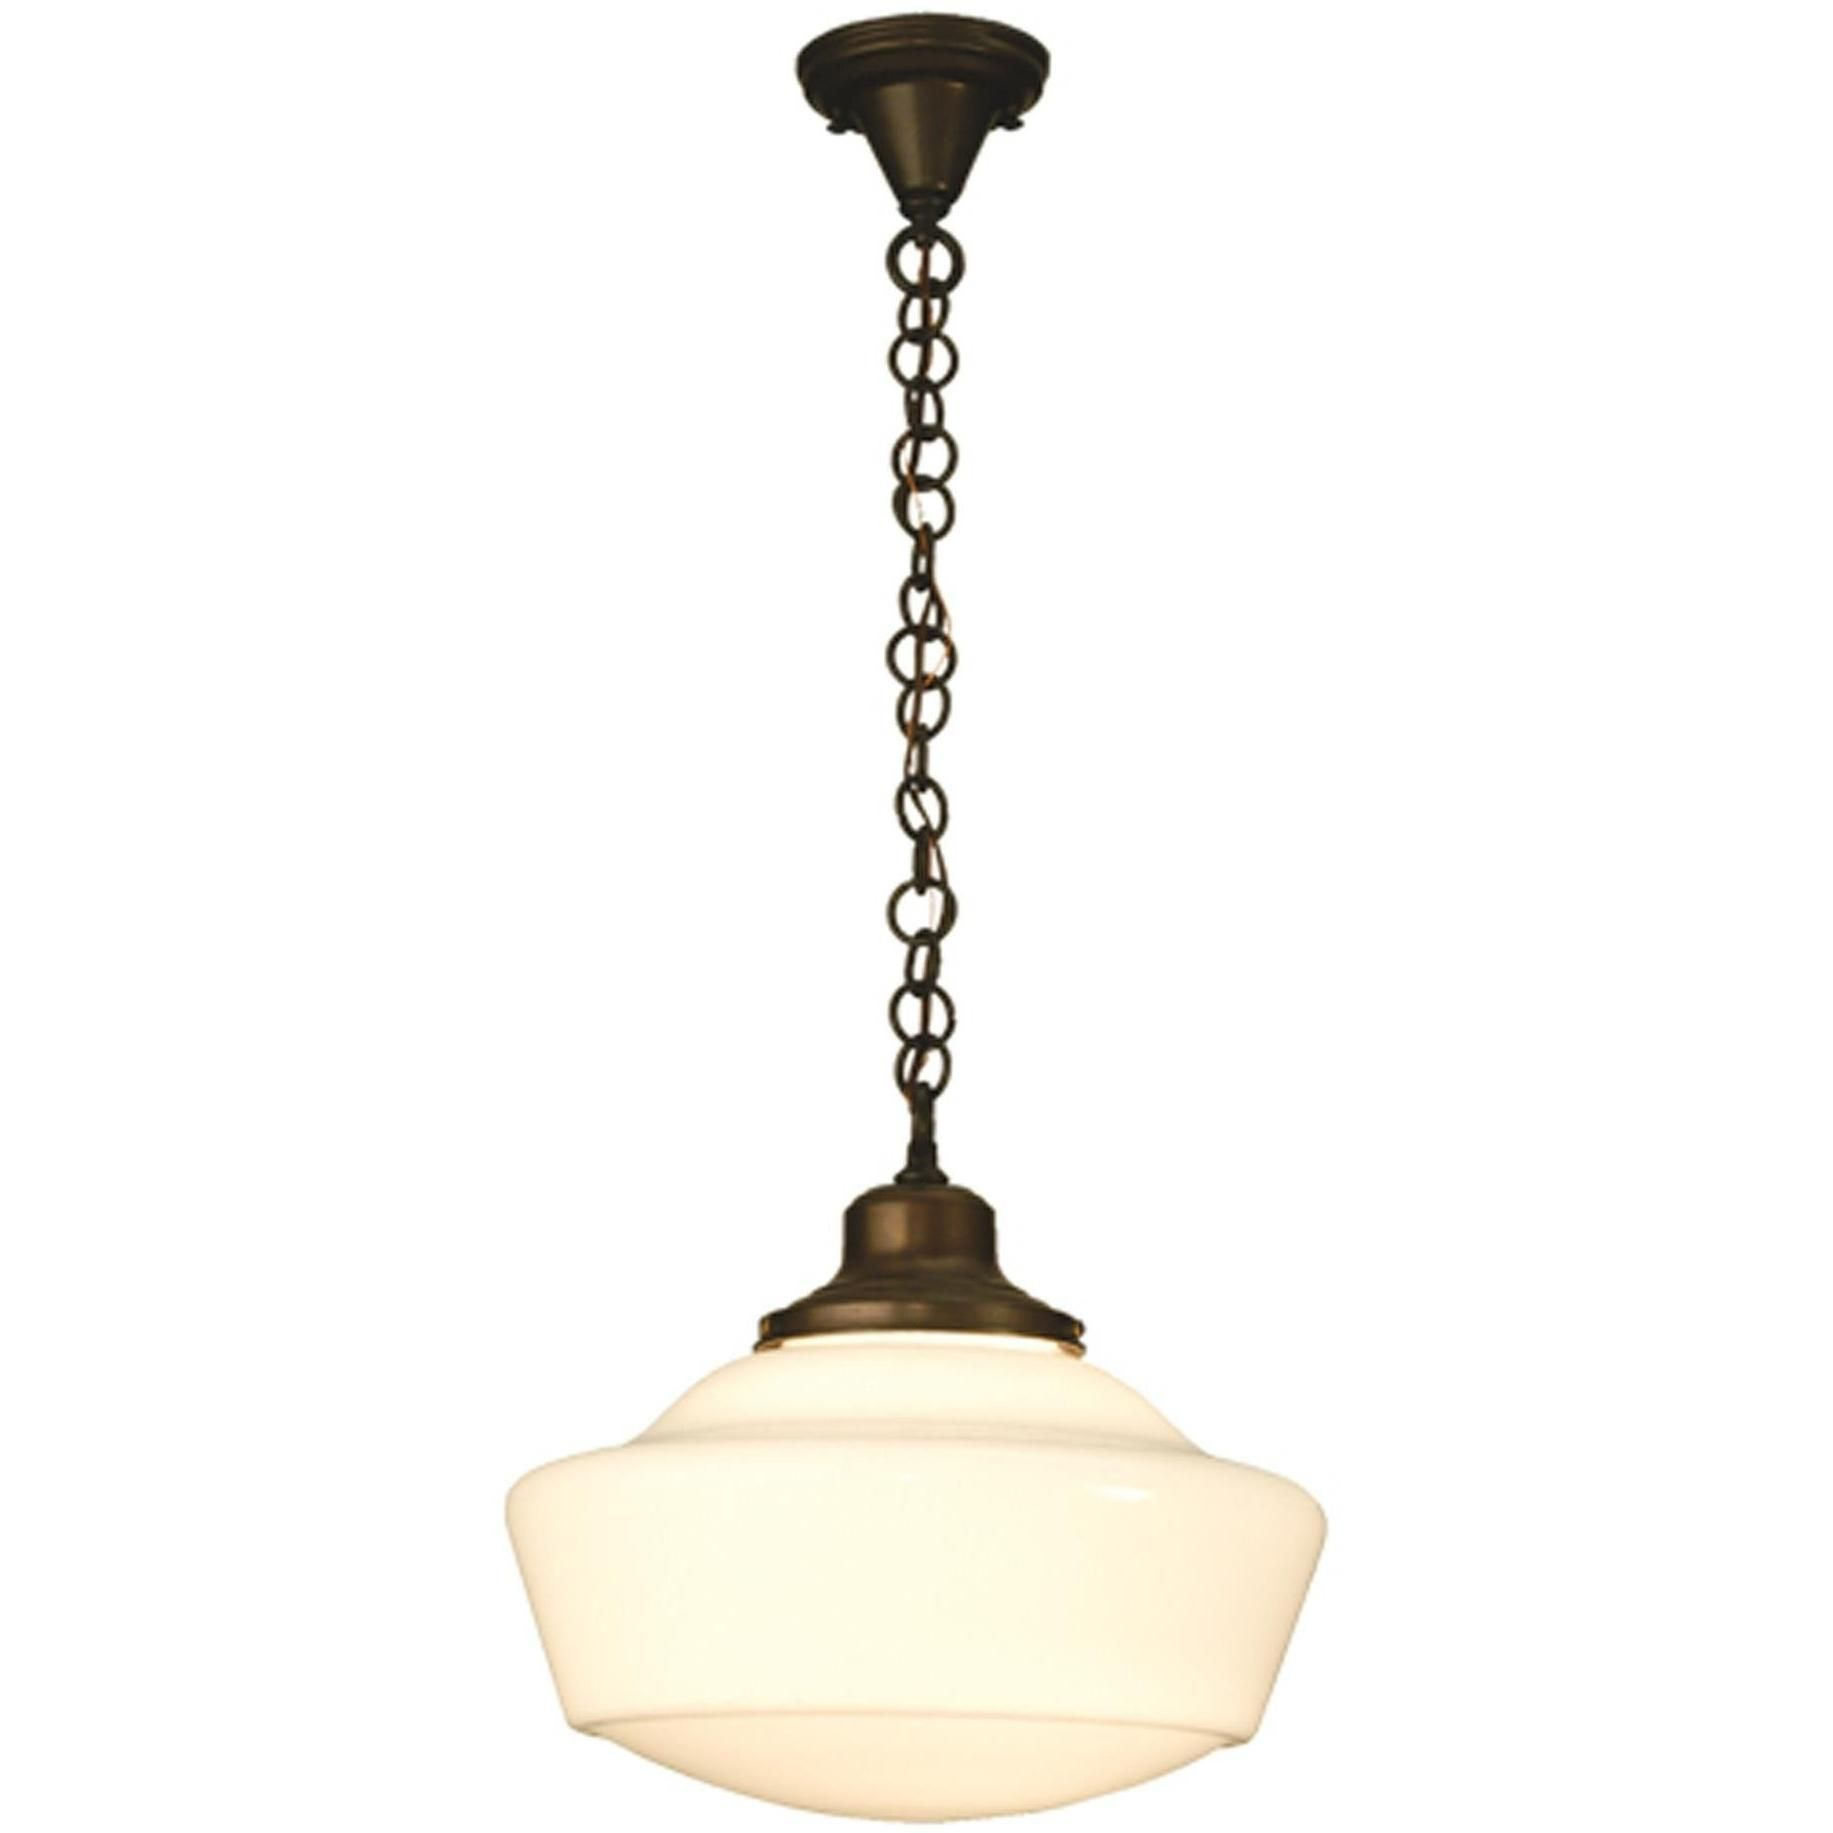 16 inch w revival schoolhouse w traditional globe pendant products rh pinterest at